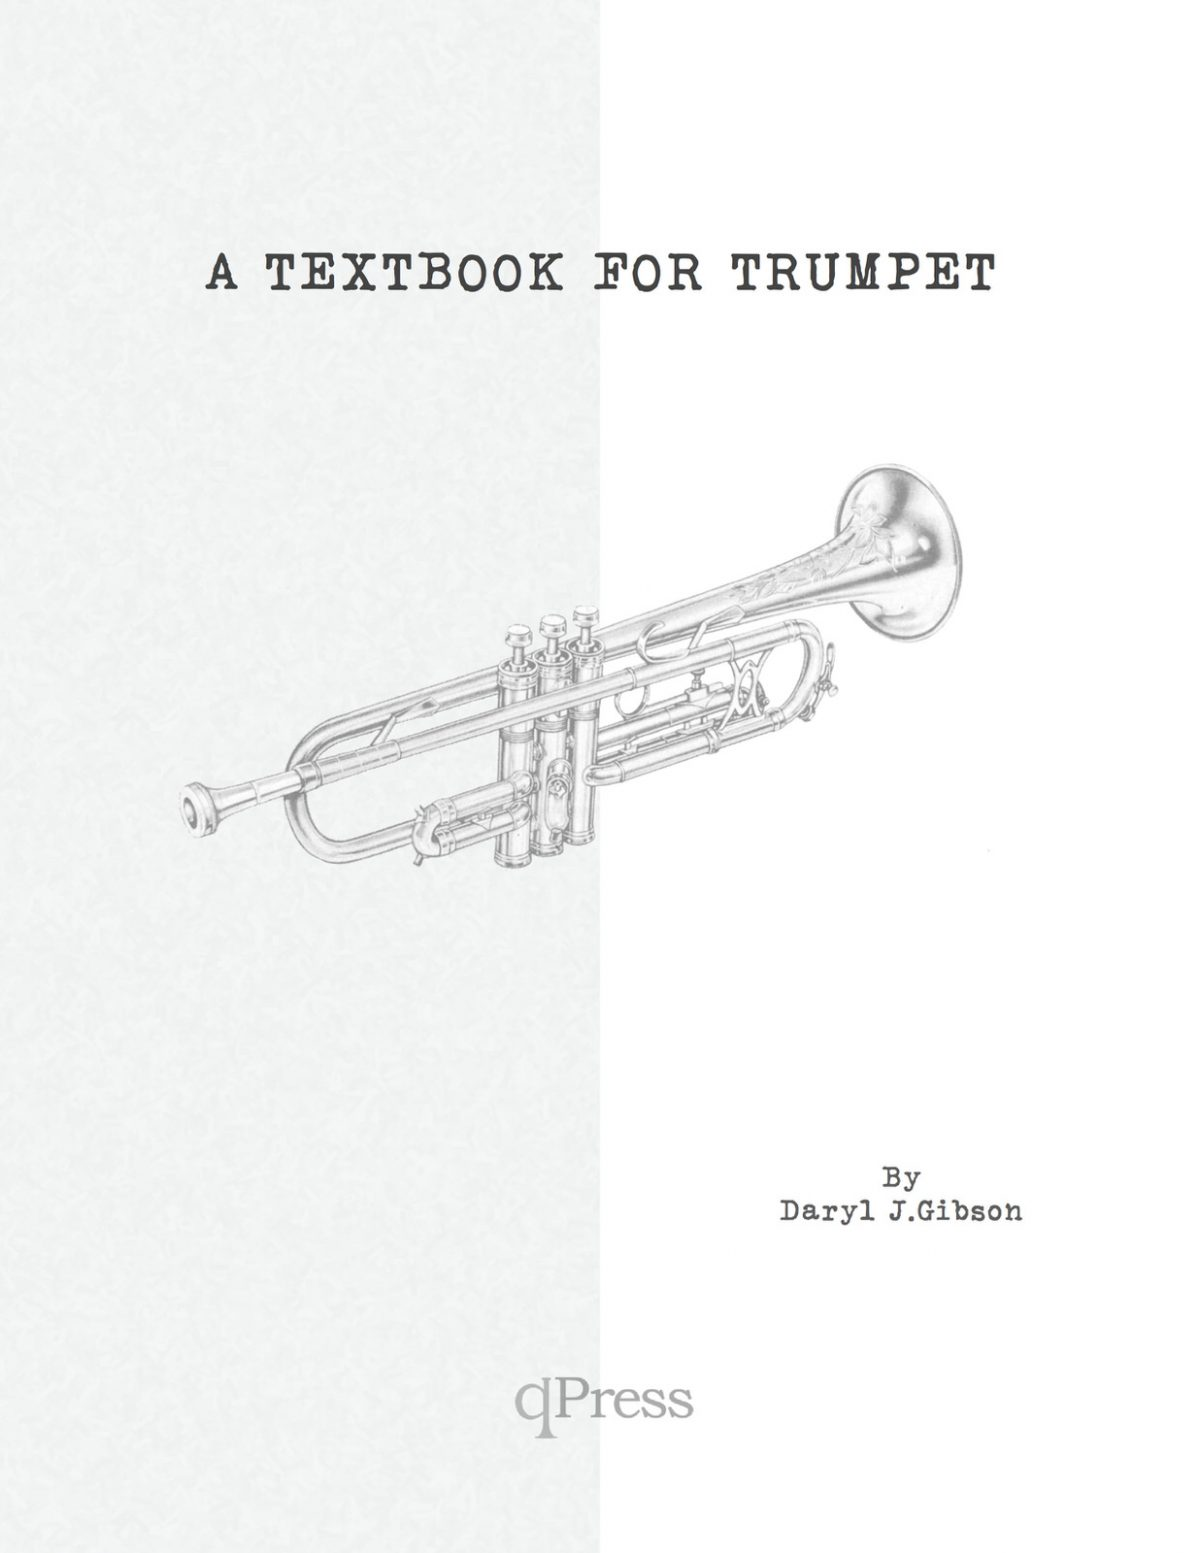 gibson-daryl-a-textbook-for-trumpet